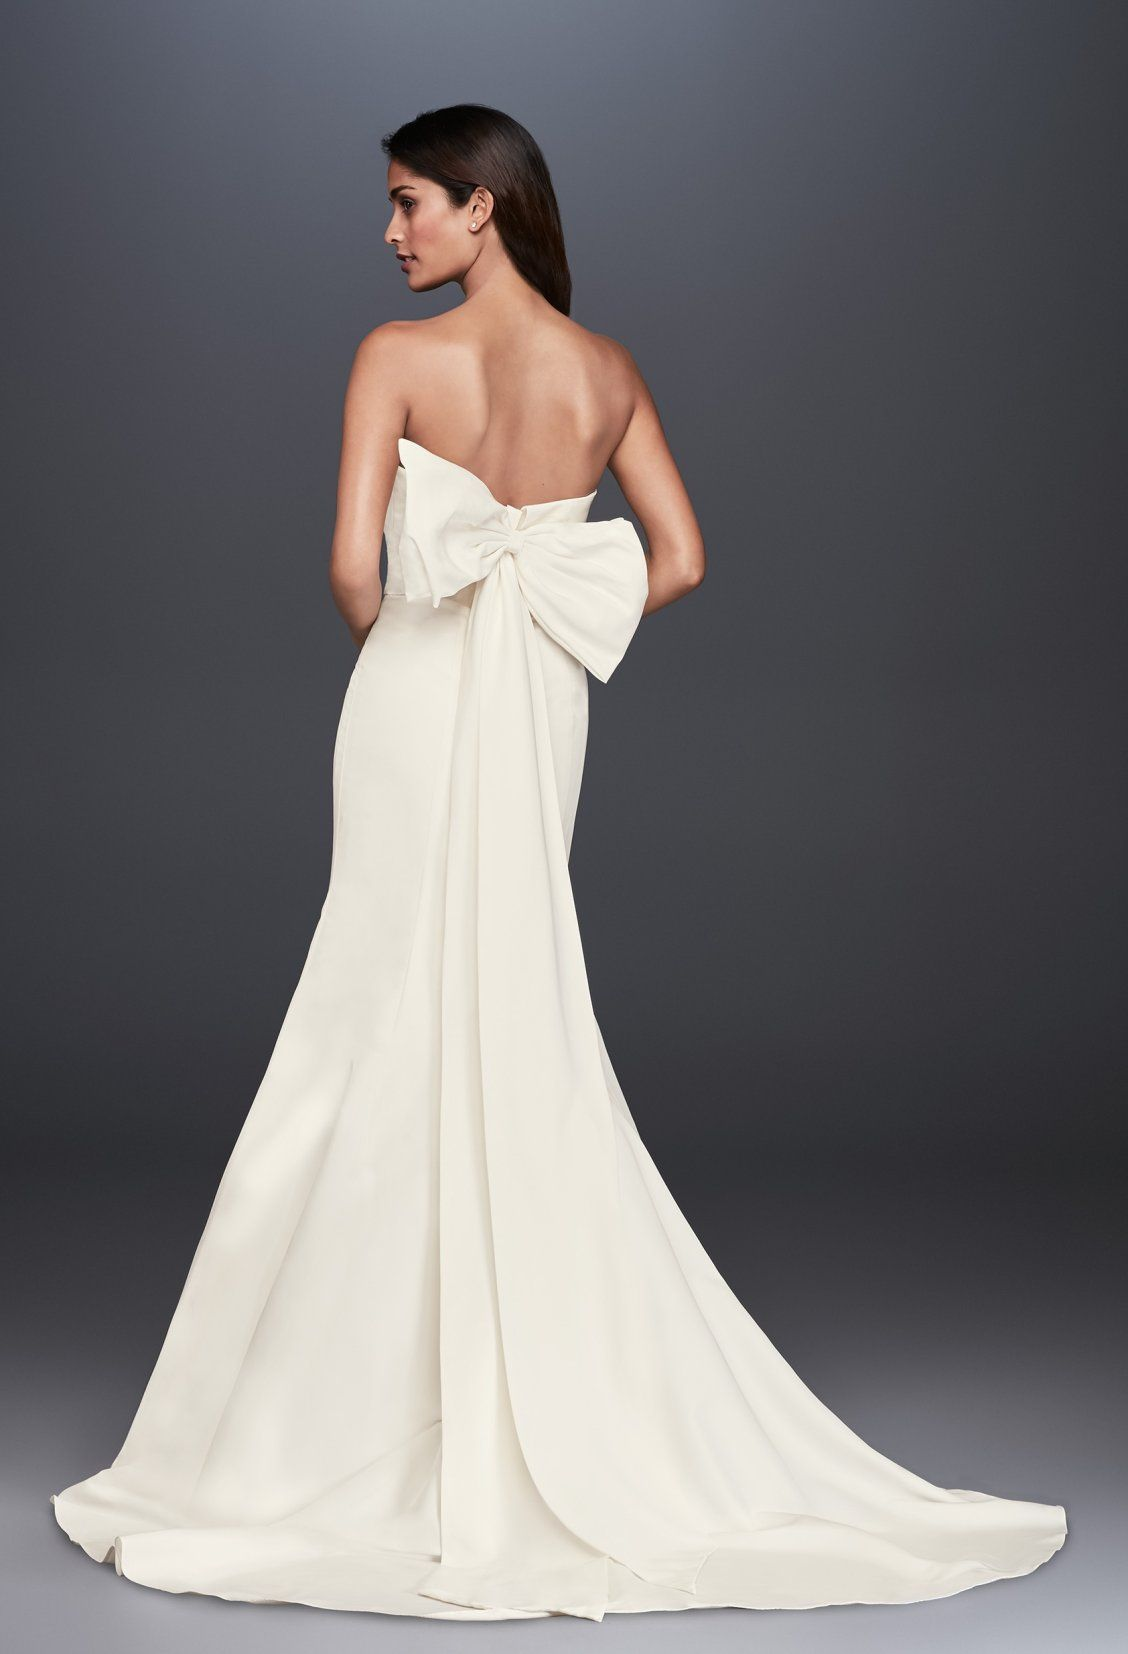 Looking for a modern wedding dress? This strapless mermaid wedding ...